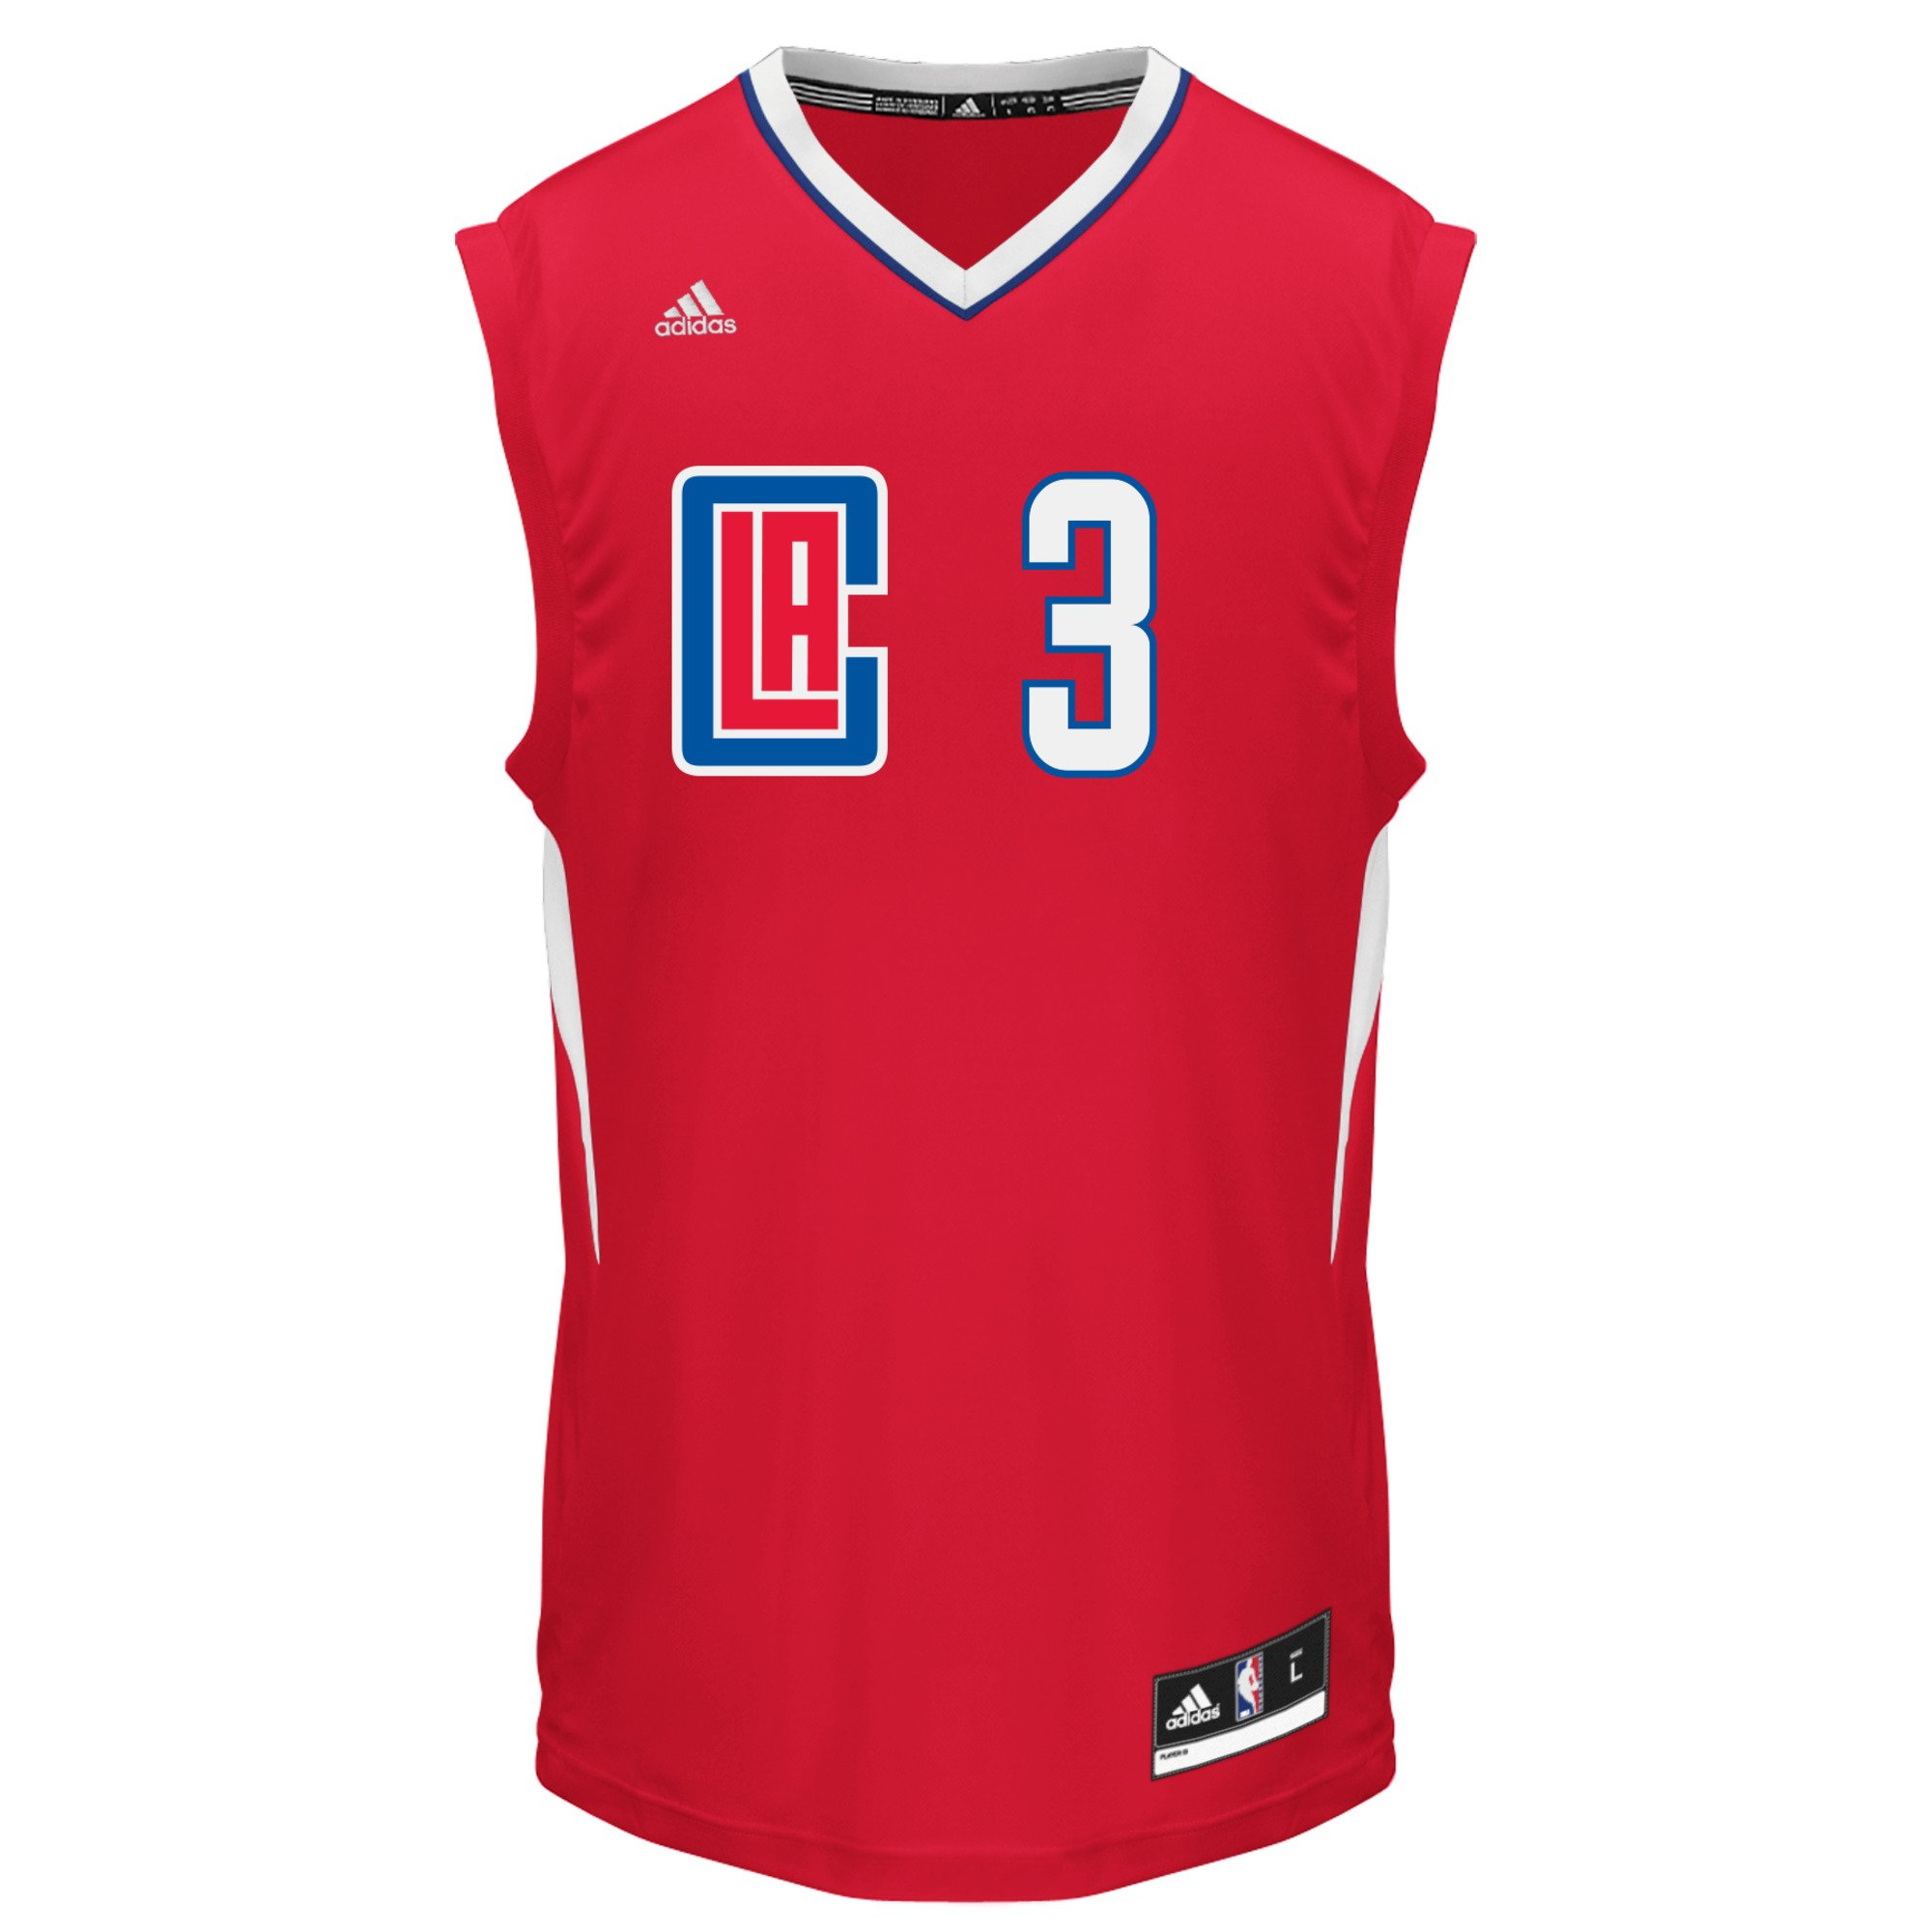 adidas NBA Los Angeles Clippers Chris Paul #3 Men's Replica Jersey, Small, White by adidas